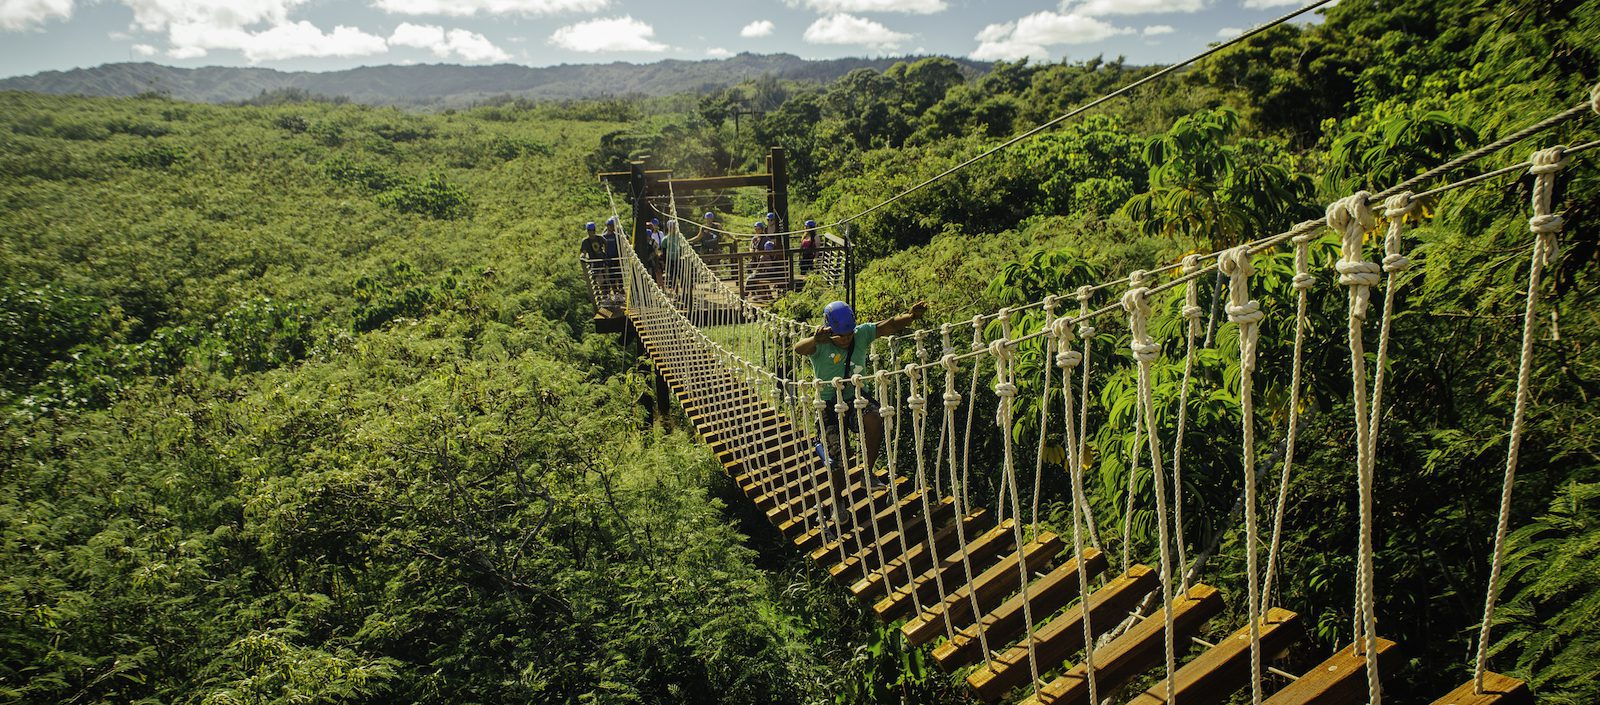 5 Reasons to Step Outside Your Comfort Zone and Go Ziplining on Oahu